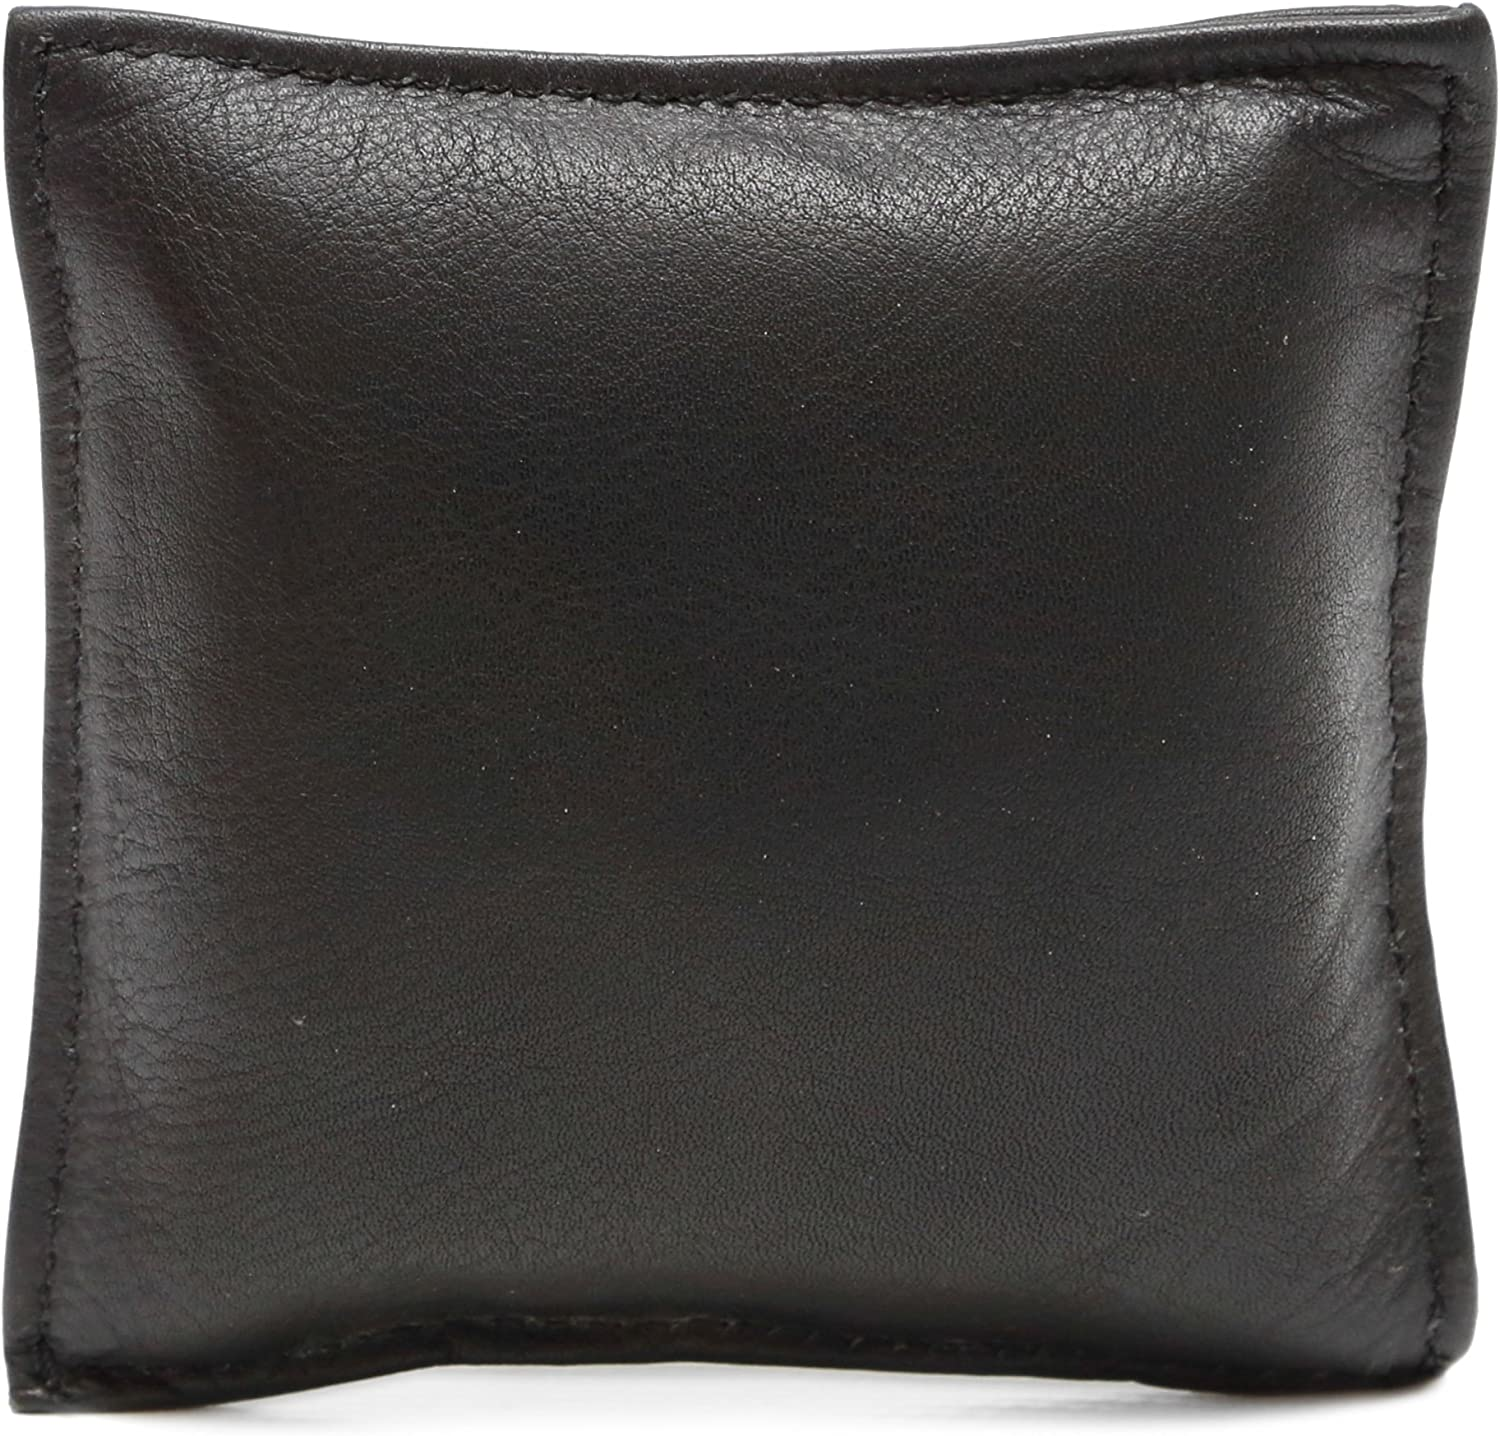 Ashlin 100% Tuscany Leather Wexford Square Paperweight Black (PAPERWT01-18-01)